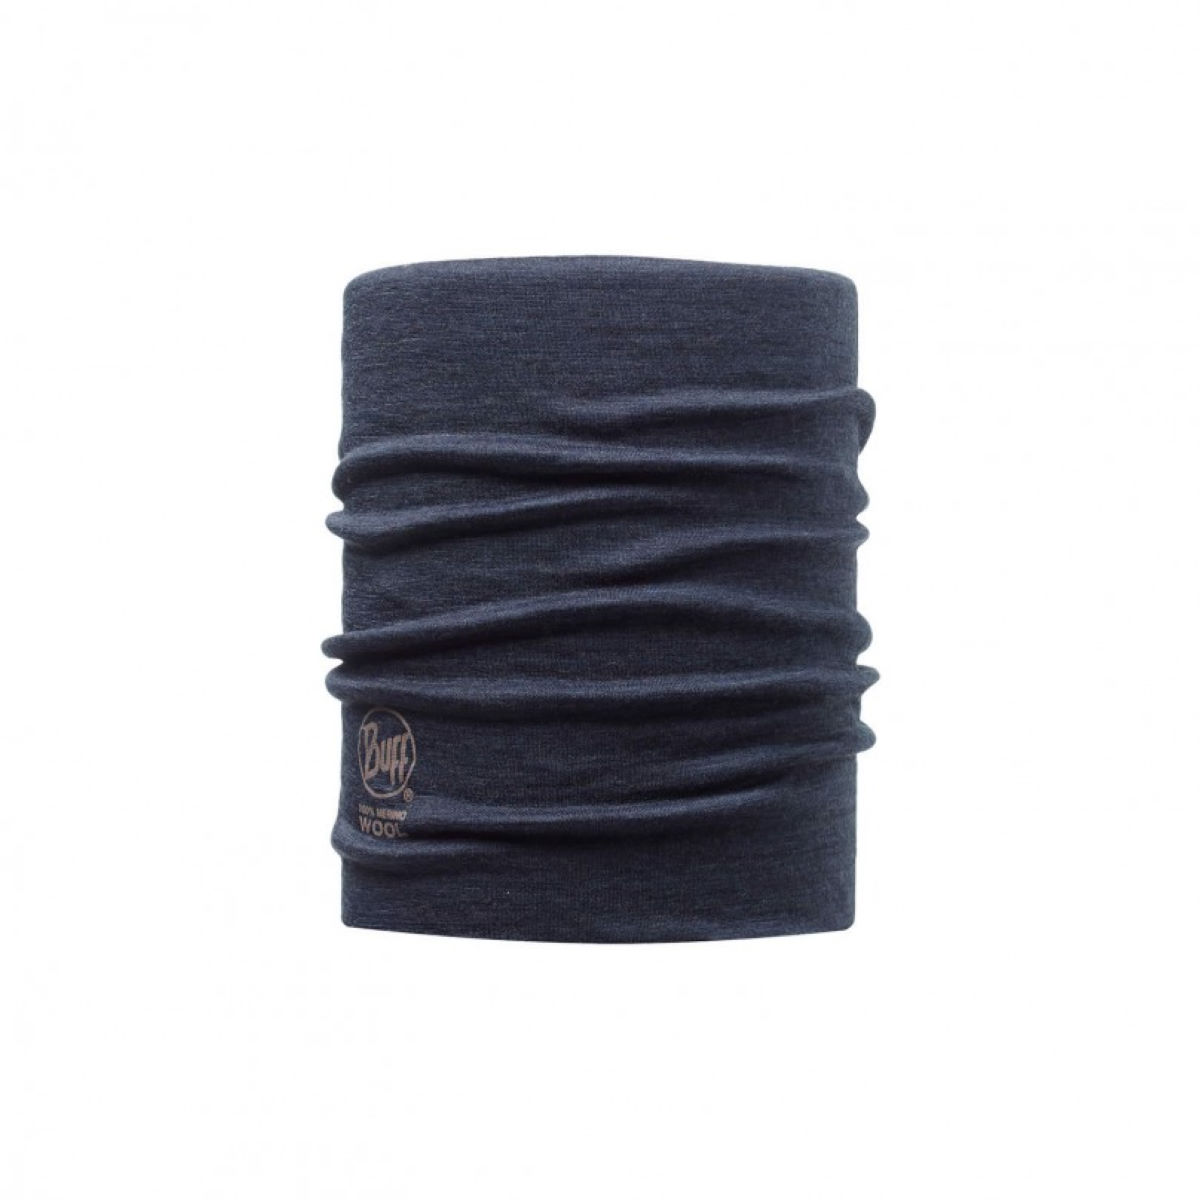 Buff Merino Wool Neckwarmer   Casual Headwear